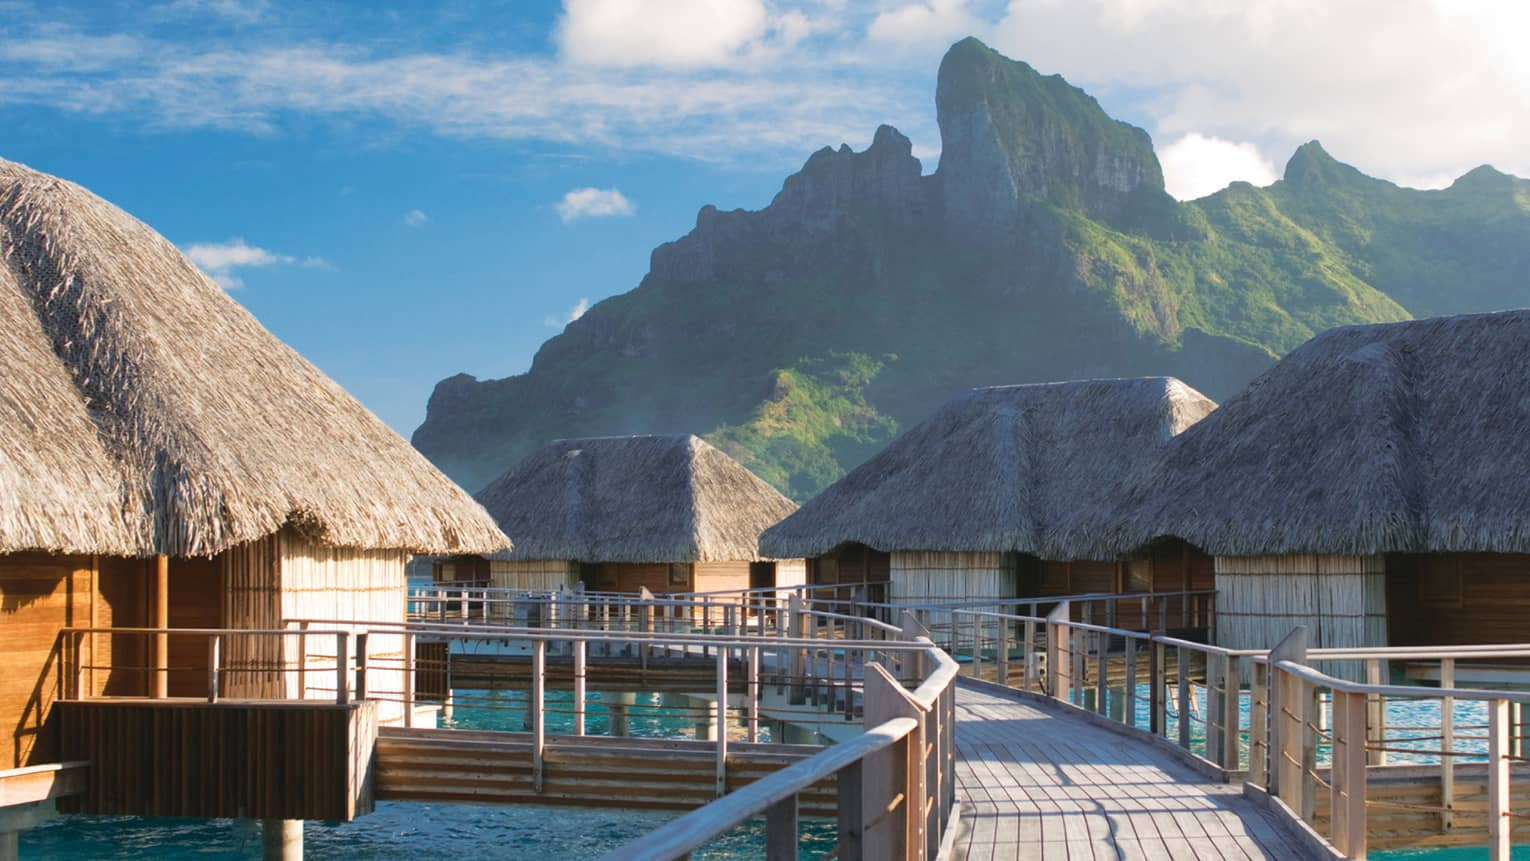 Curved deck connecting overwater bungalows with thatched roofs above lagoon